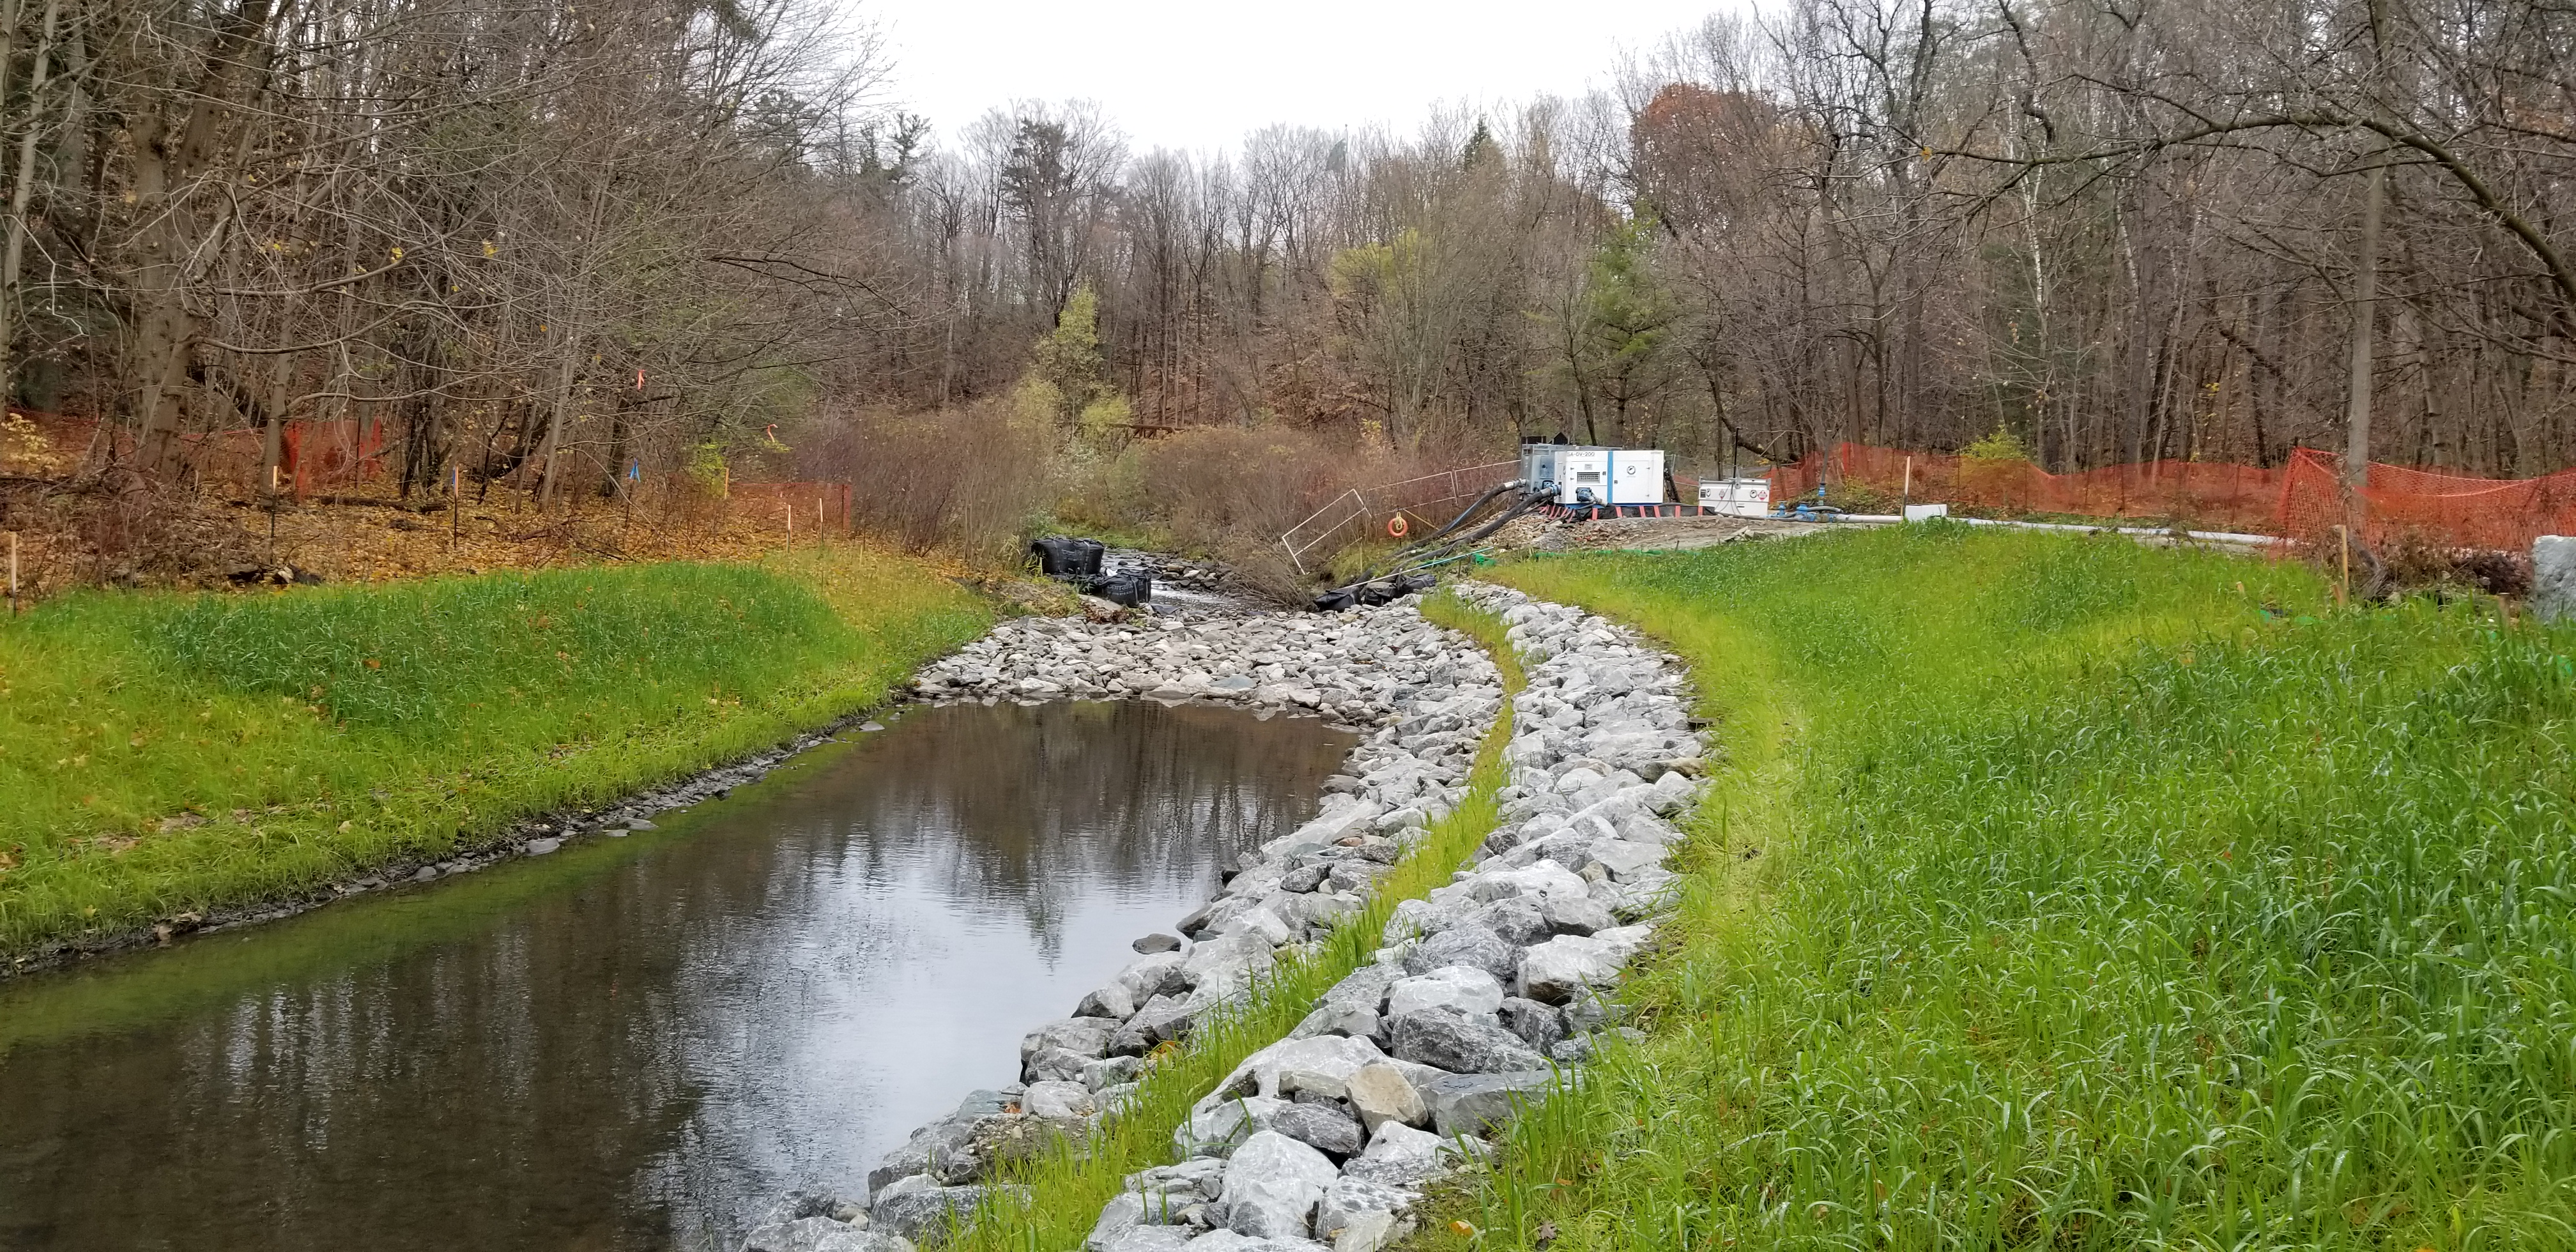 A stretch within the upstream portion of the works at Wilket Creek - Reach 2.